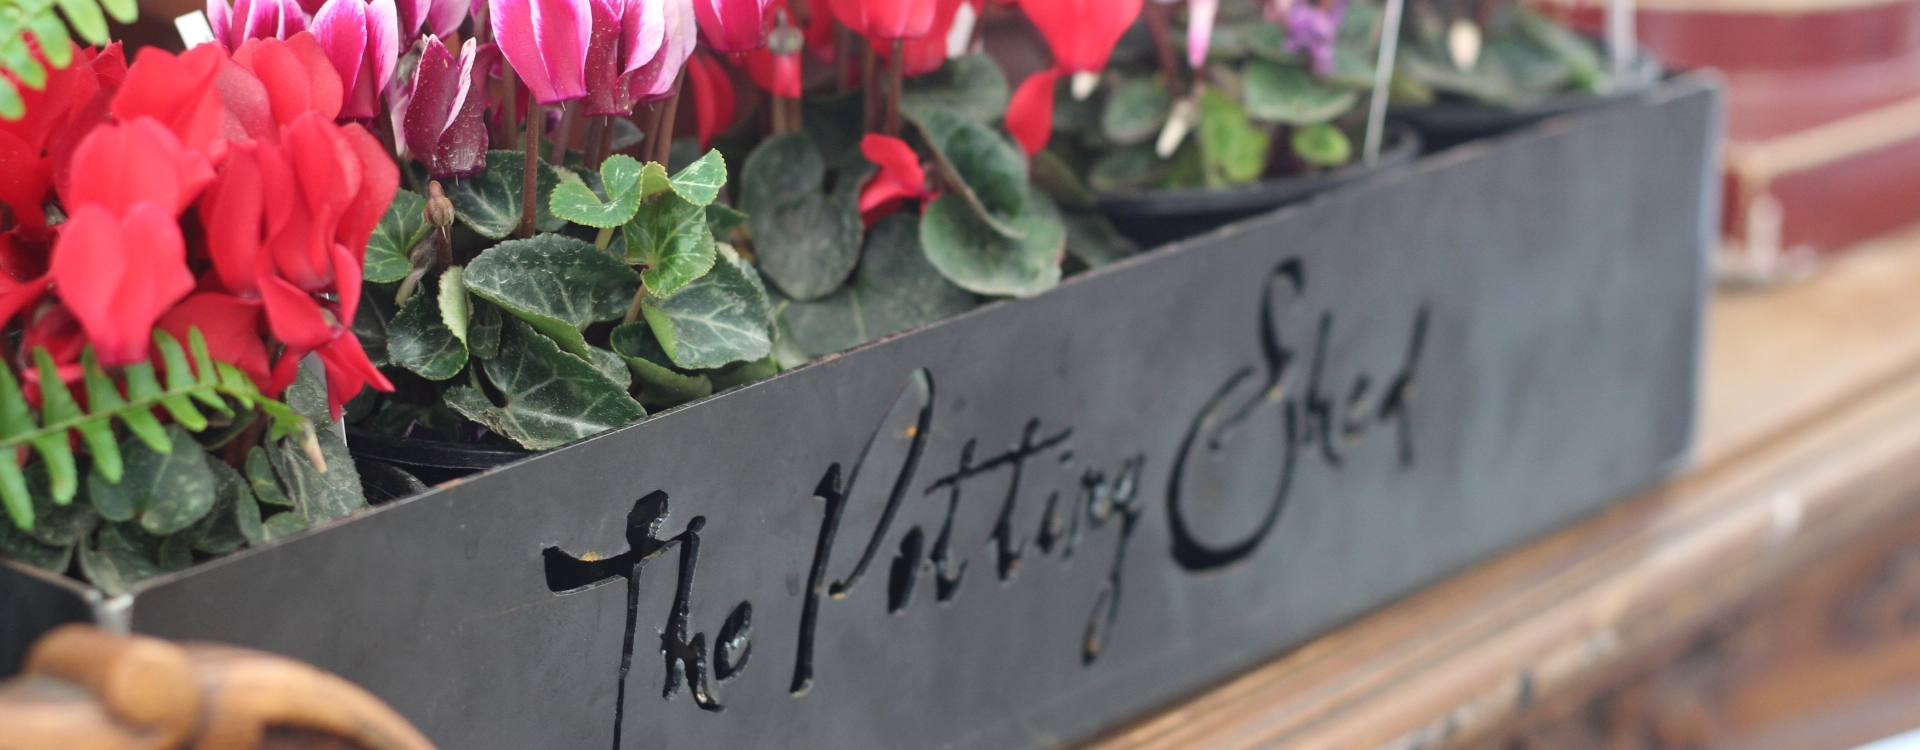 The Potting Shed cover image |  | Travelshopa